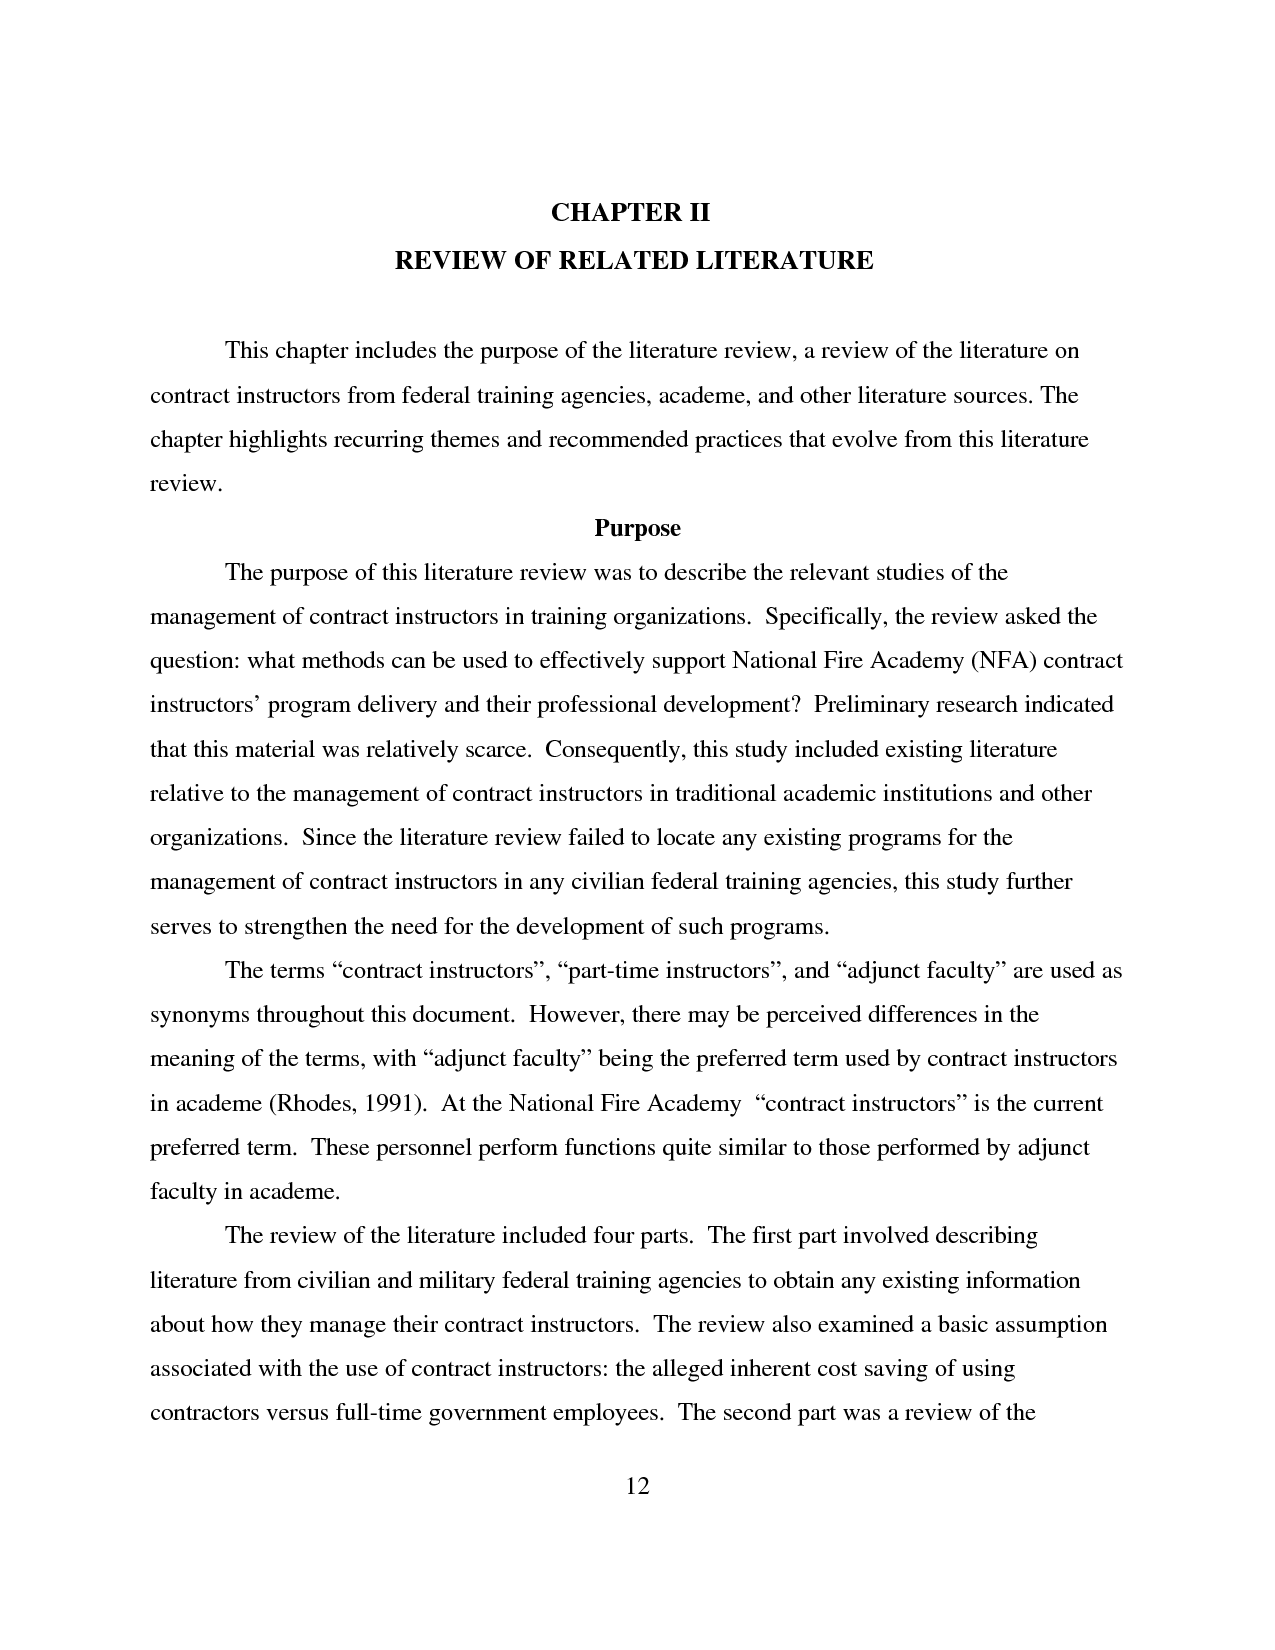 review of related literature in thesis | literature review ...